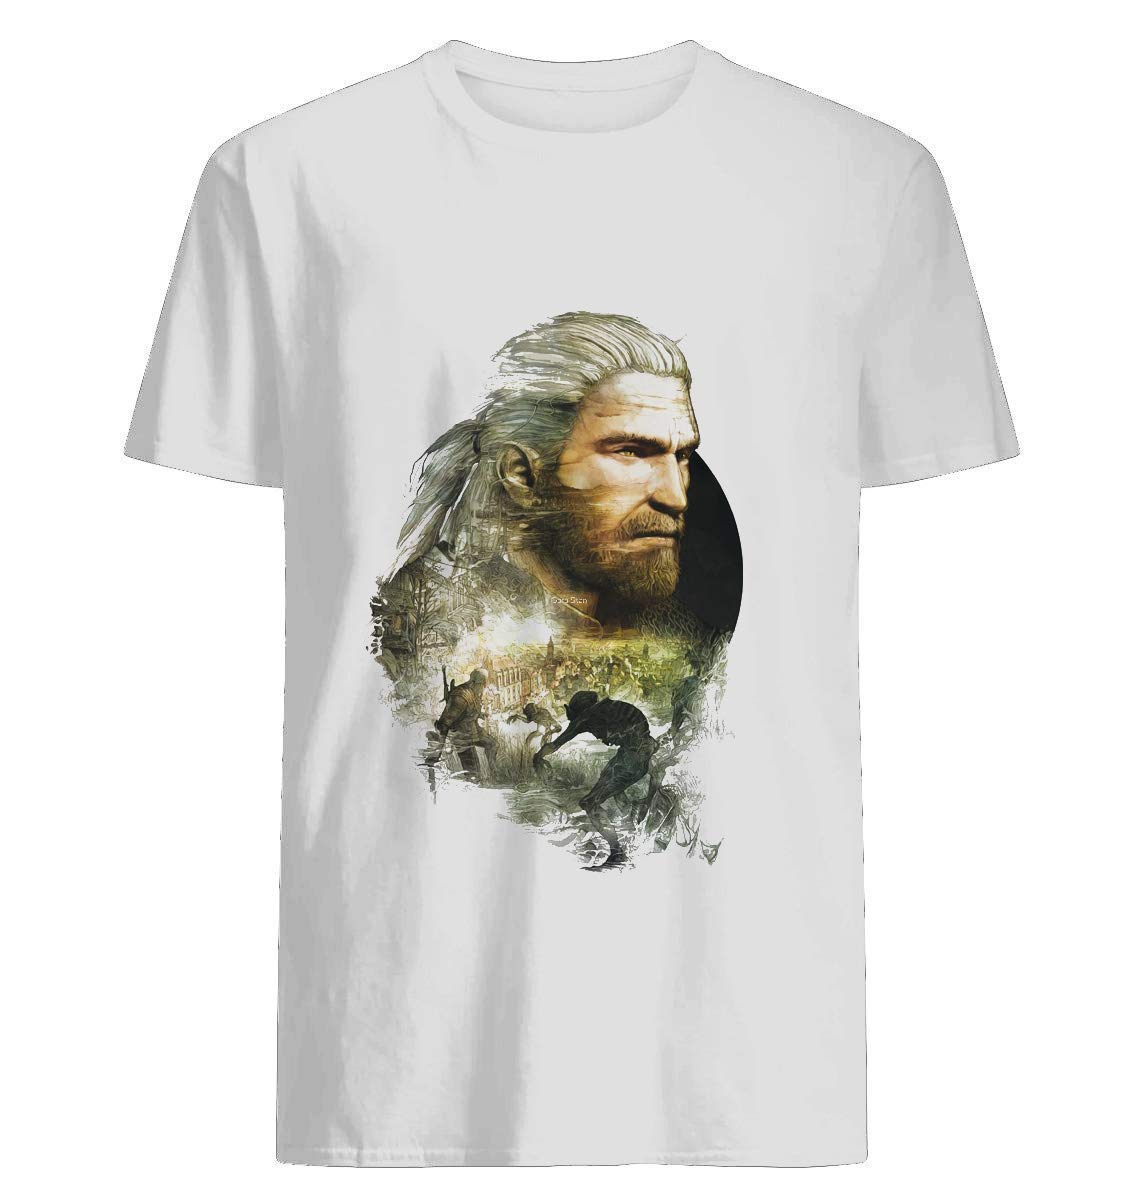 Geralt Of Rivia The Wit 3 Shirts